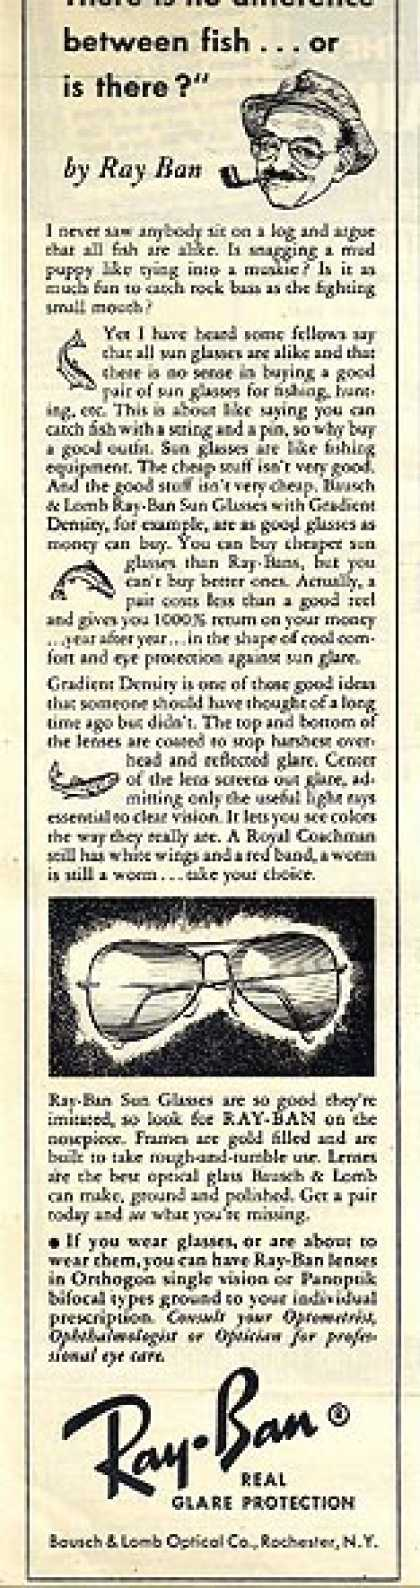 Ray-Ban's Real Glare Protection (1952)